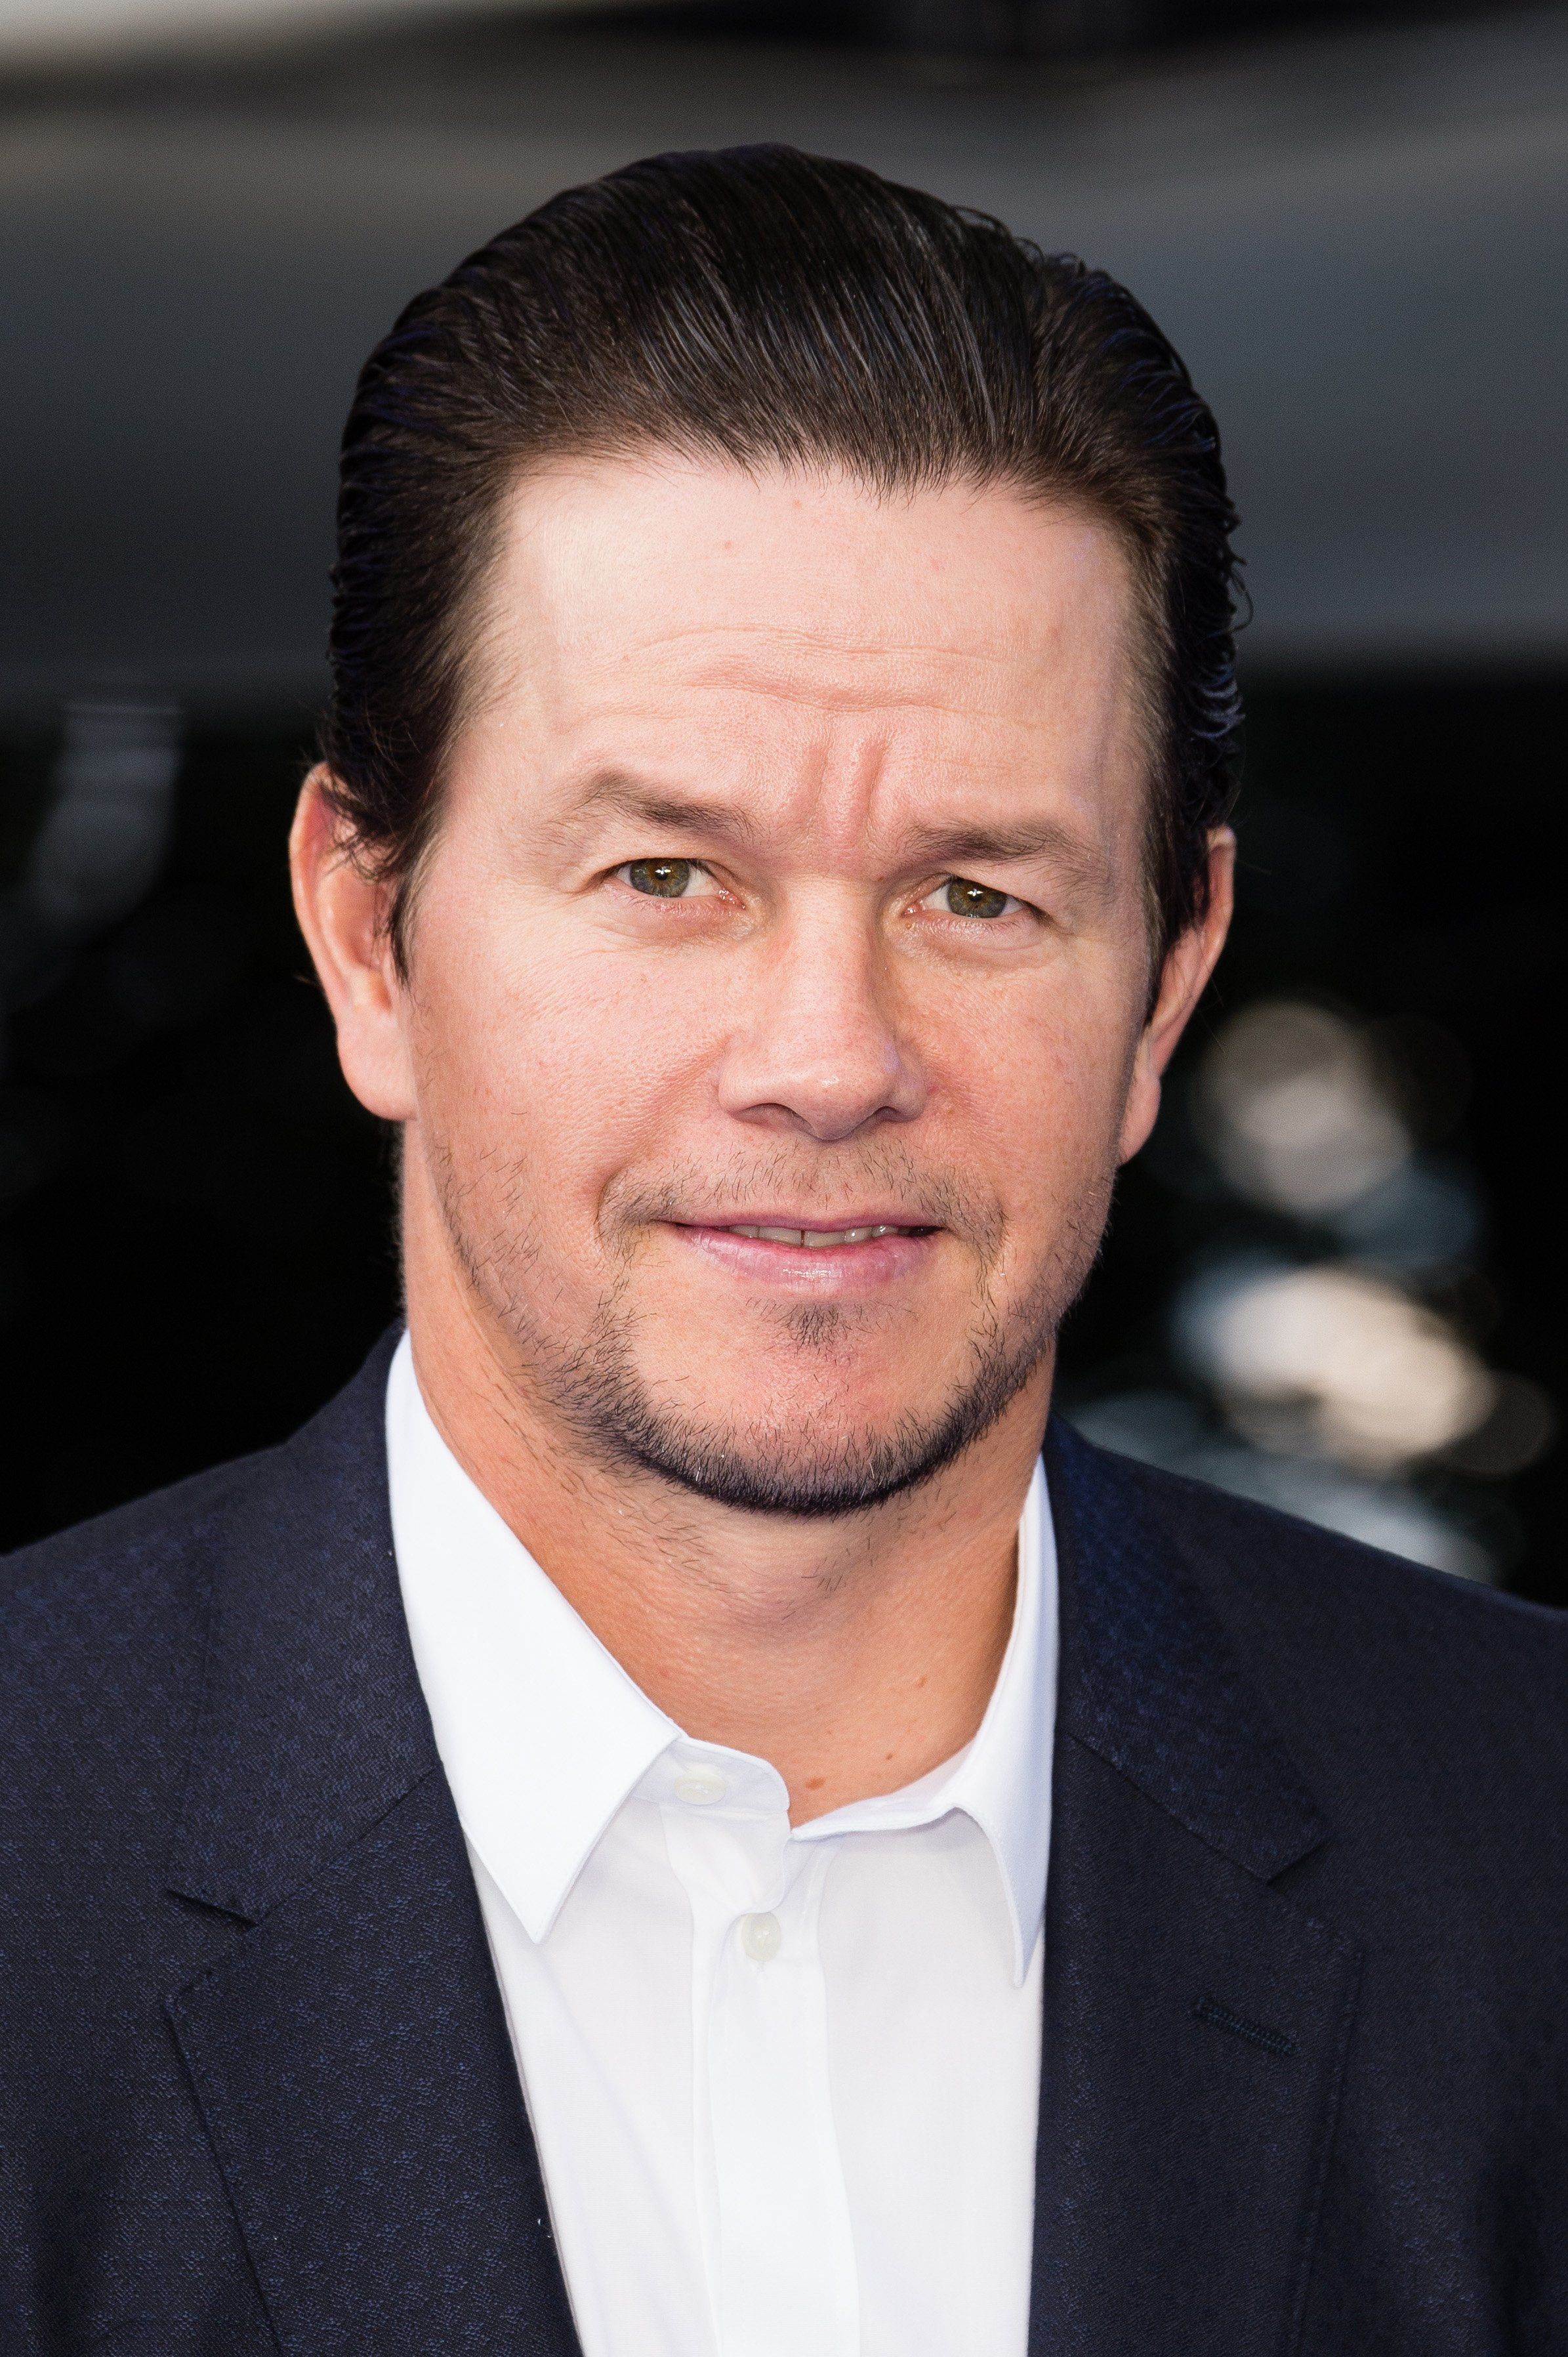 """Mark Wahlberg attends the premiere of """"Transformers: The Last Knight"""" in London, England on June 18, 2017 